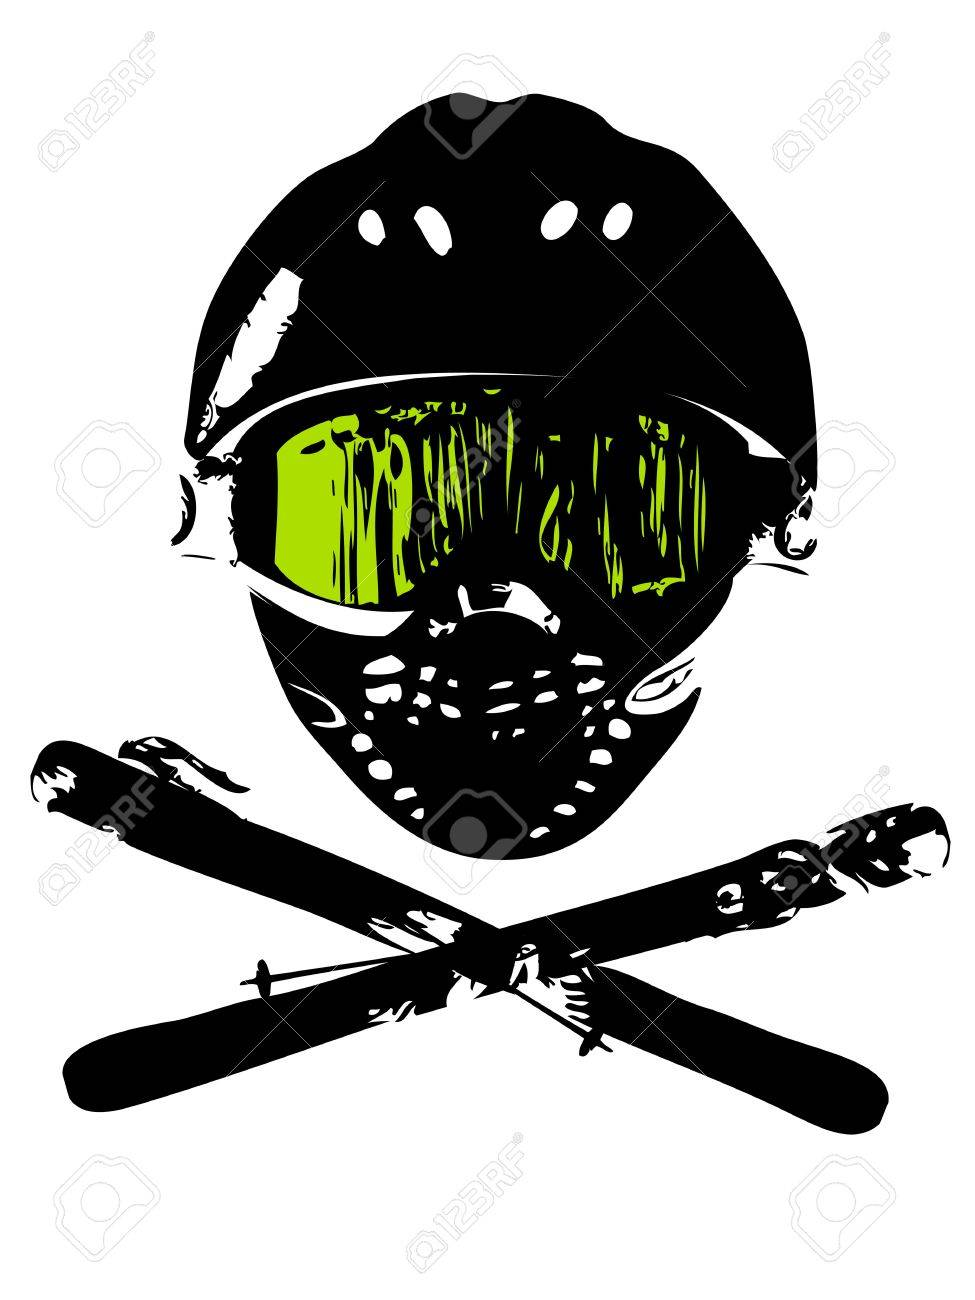 Extreme snowboard mask (logo, magazin, flyer, background) Stock Photo - 17222864